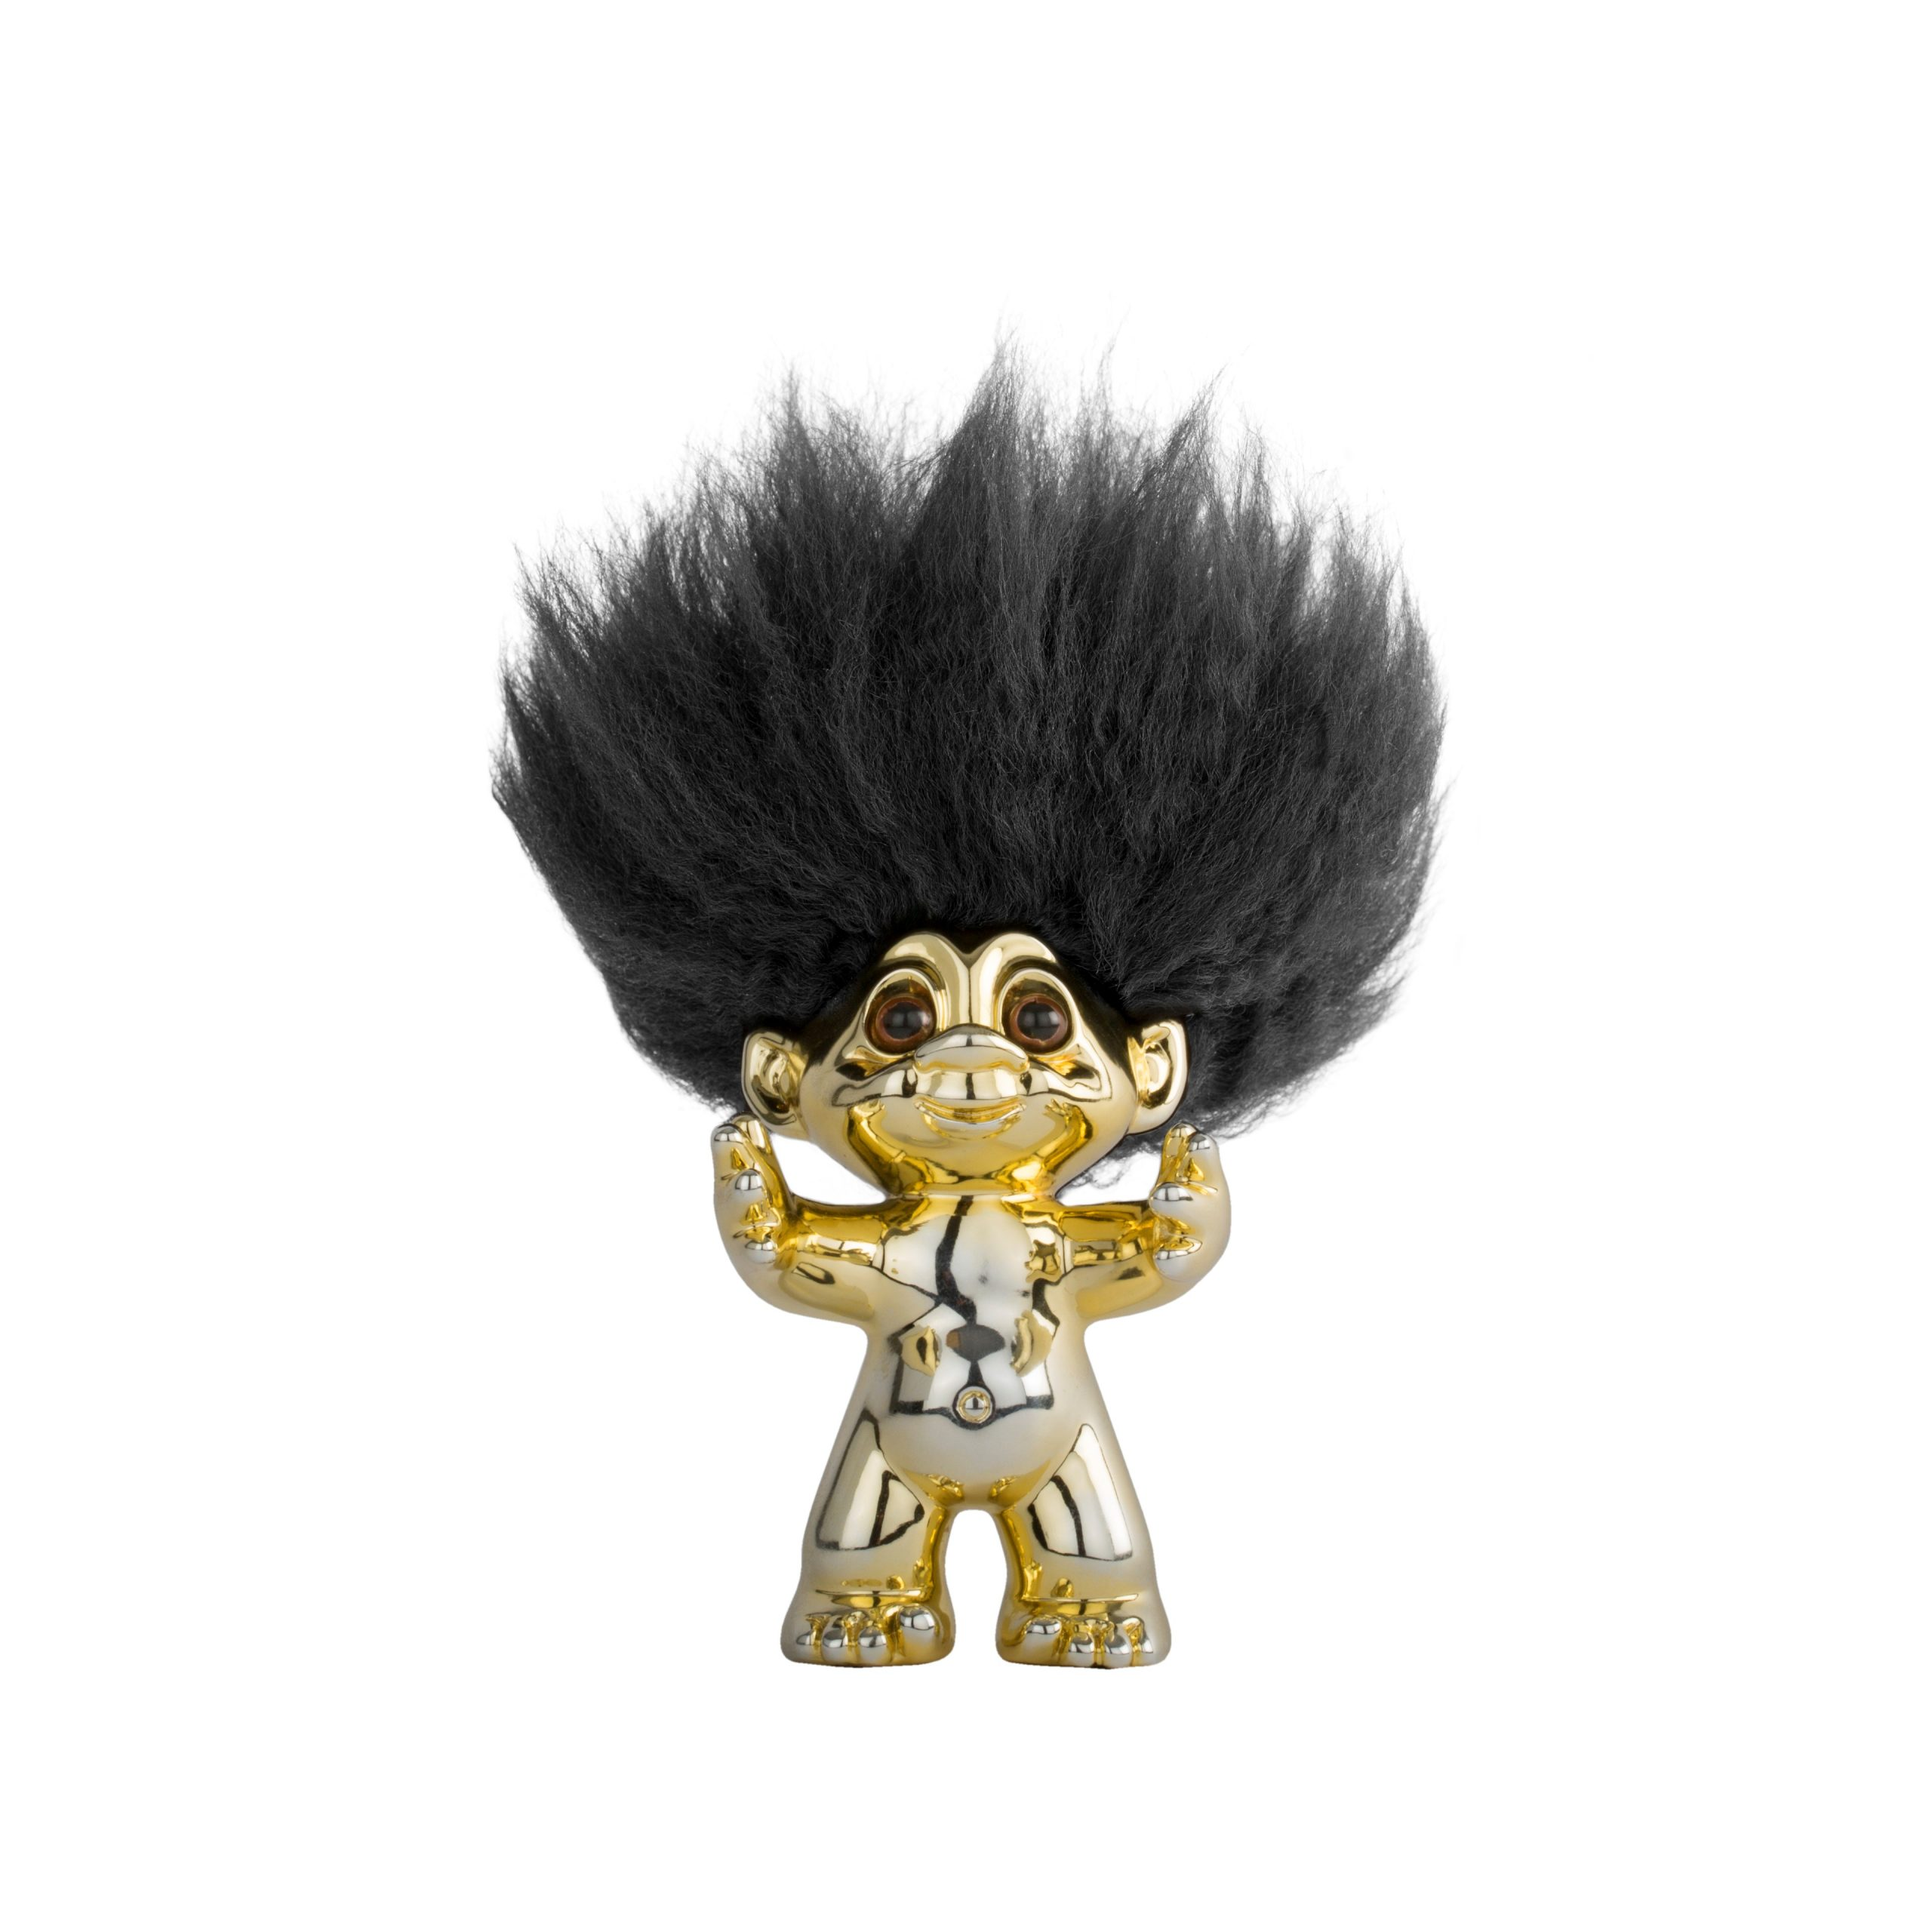 Goodluck Troll – Brass-gold Color With Black Hair